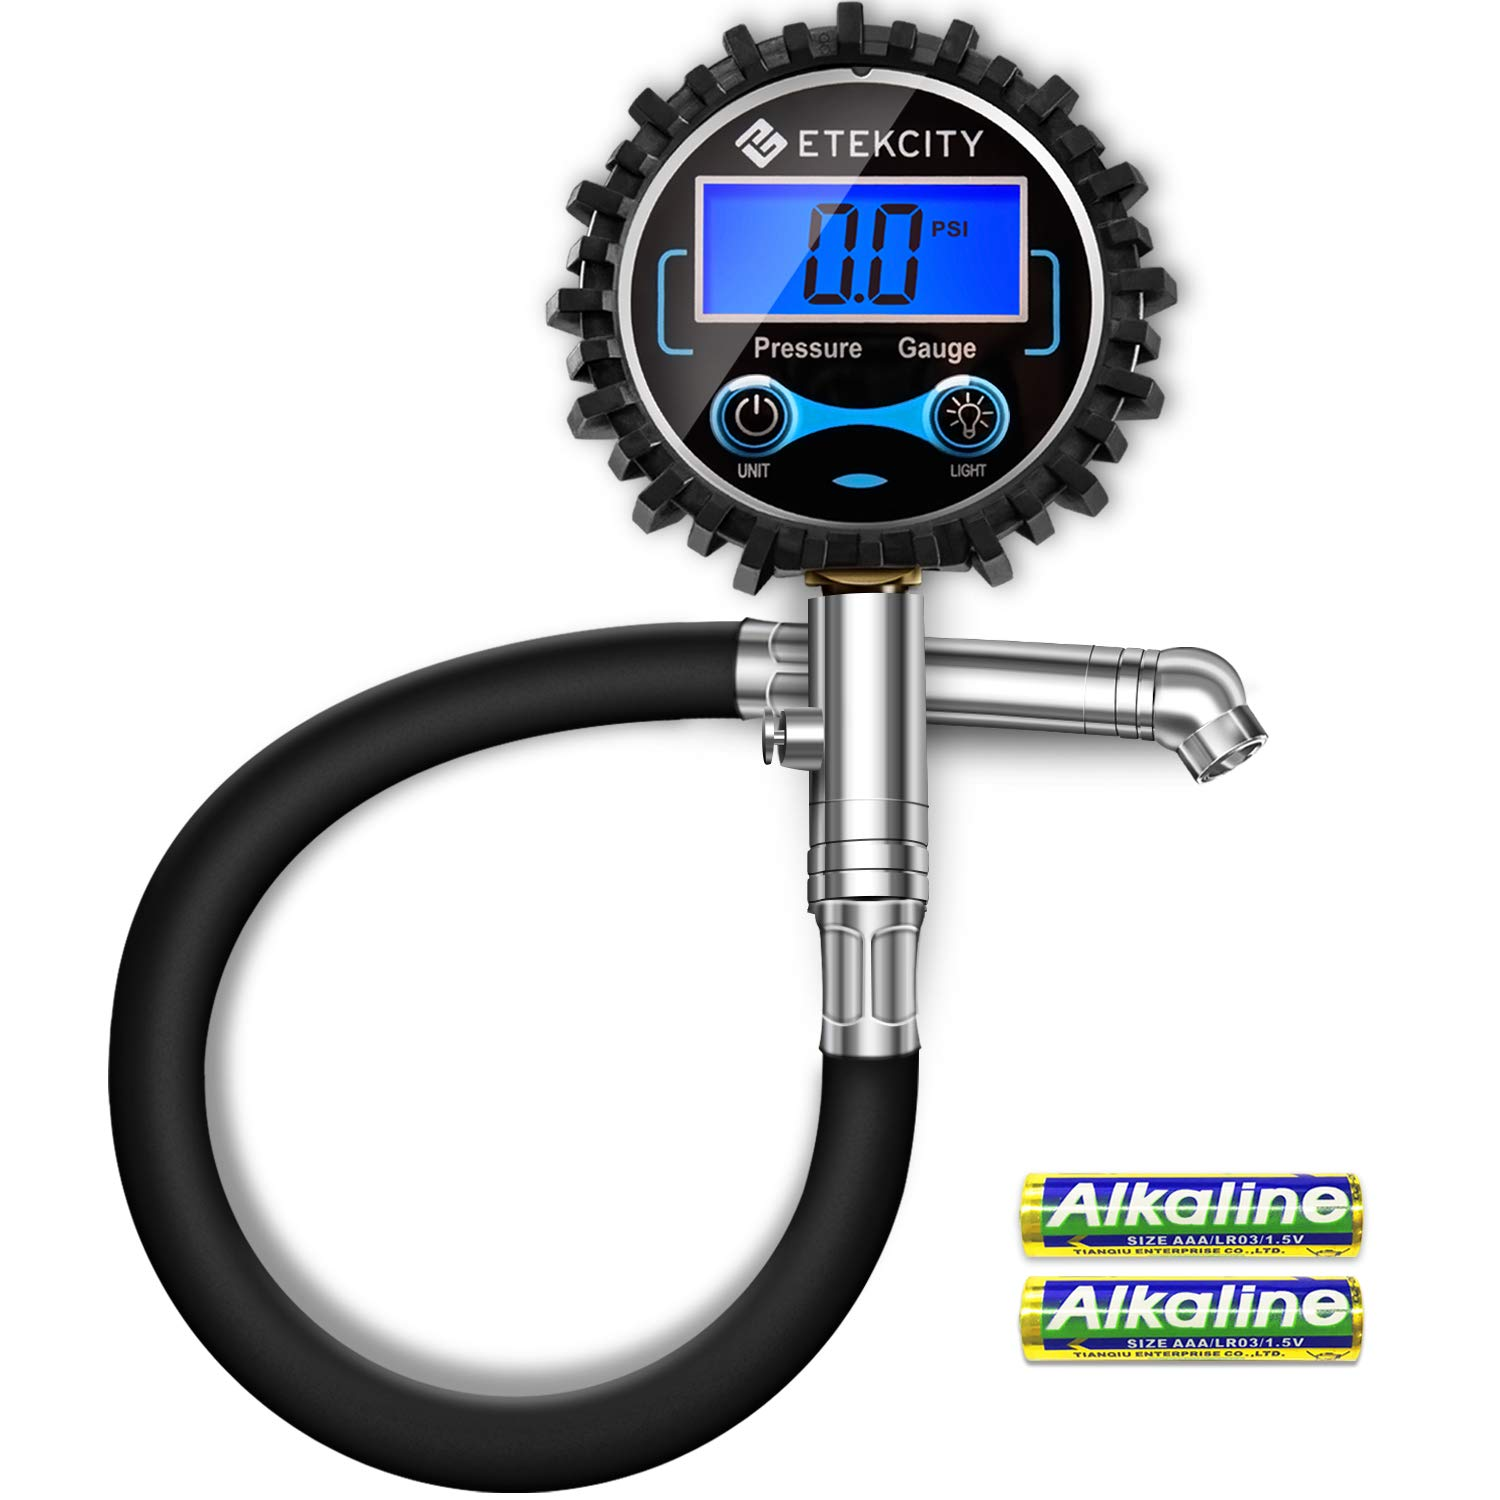 Etekcity Digital Tire Pressure Gauge 230 PSI with Backlit LCD Display Air Bleed & Rubber Hose, Heavy Duty Accurate 0.1 Resolutionfor Truck, SUV, RV, Motorcycle, Batteries Included, 2-Year Warranty